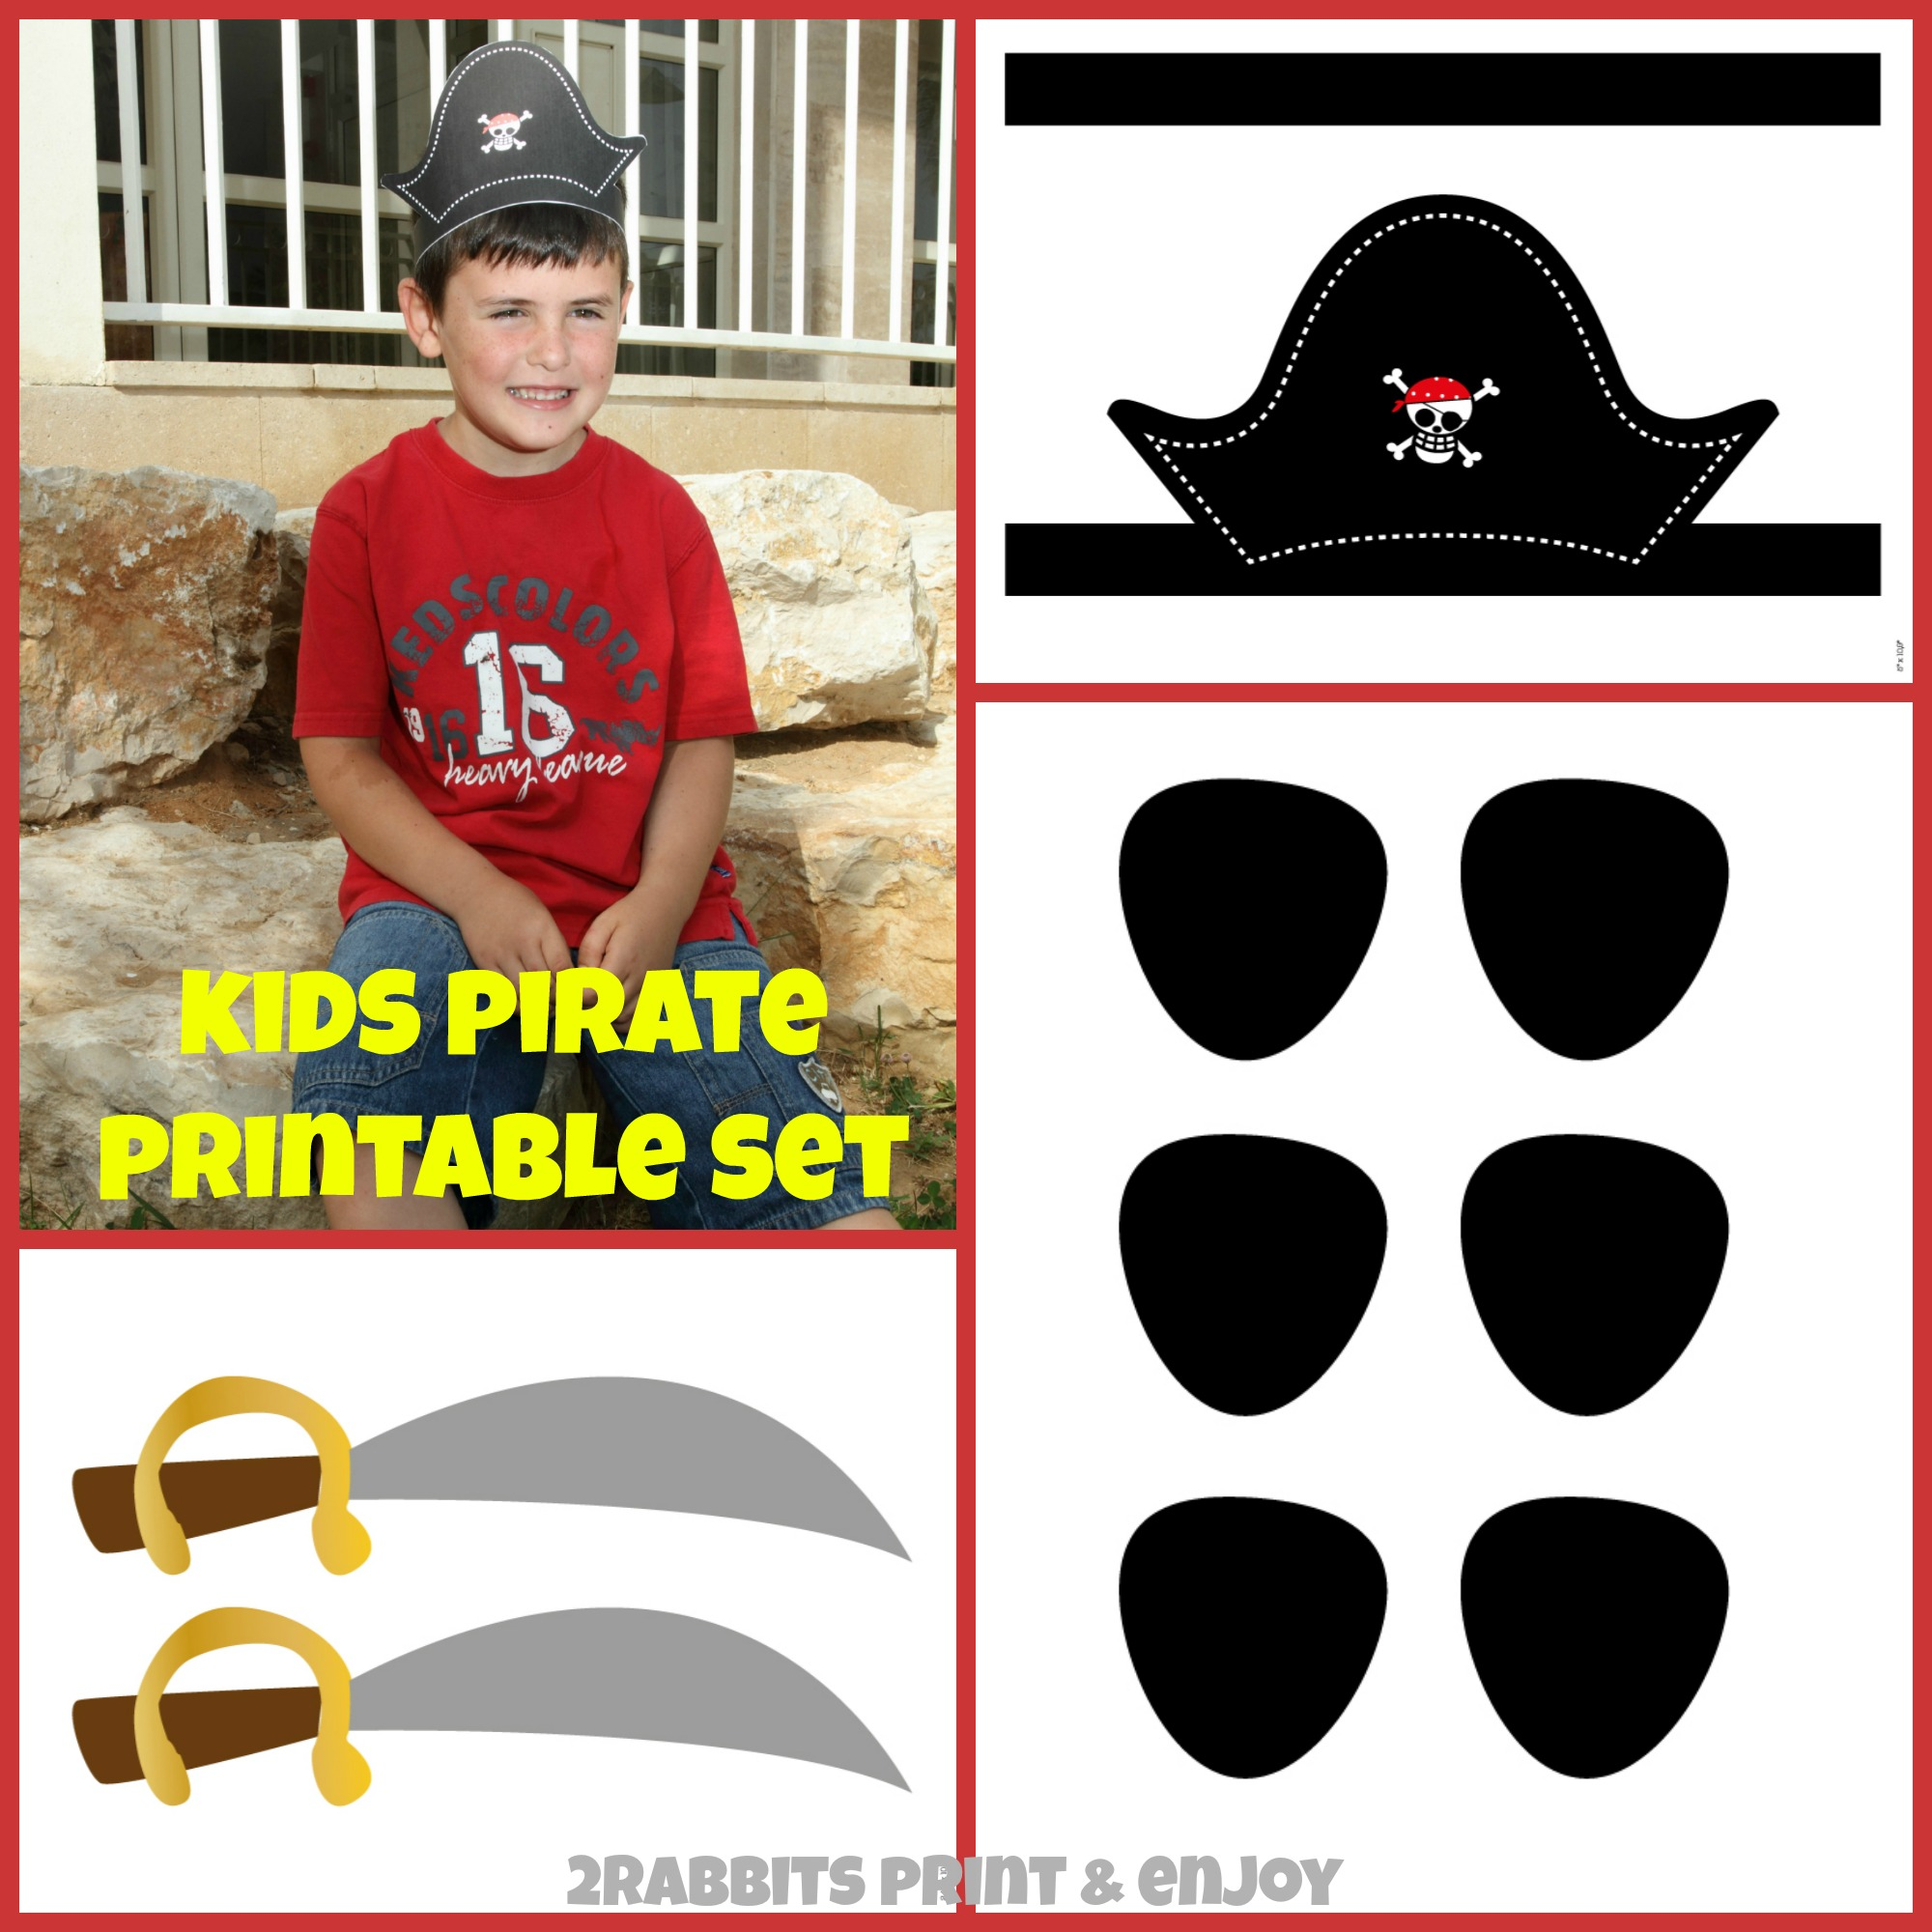 Kids Pirate Printable Set!!